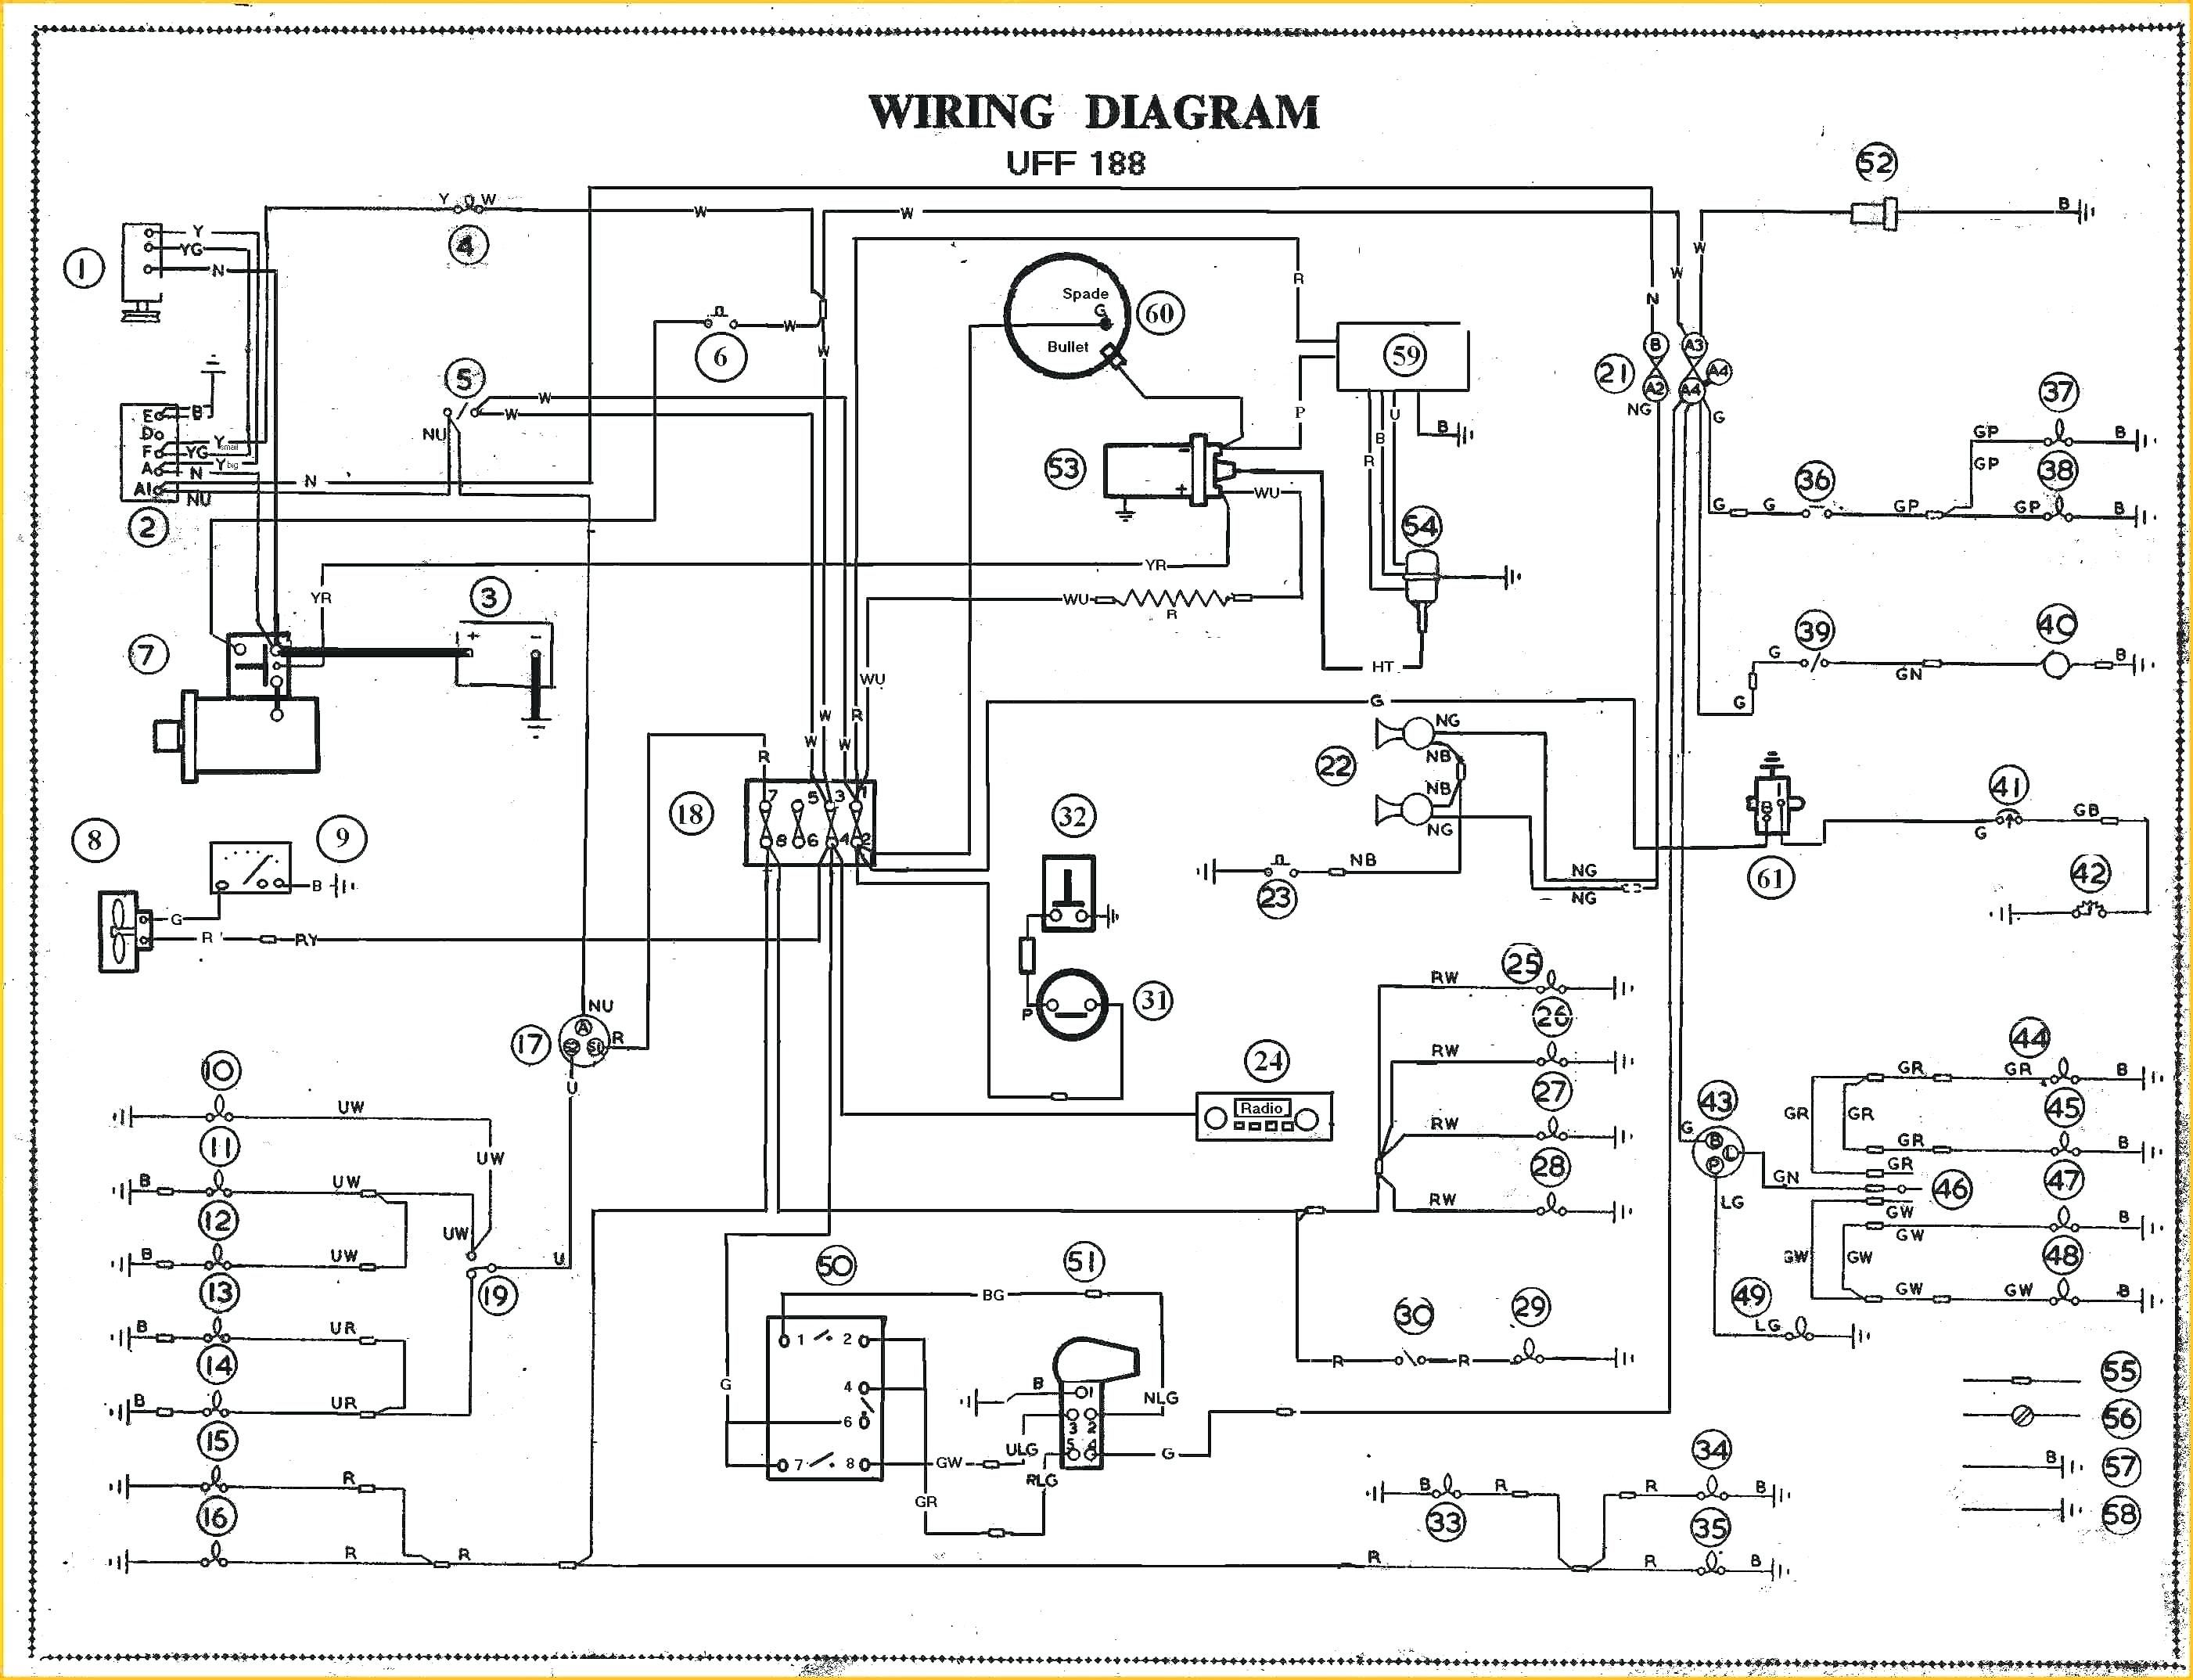 Basic Hvac Wiring Diagrams Schematics At Diagram Pdf | Diagram, Diagram  design, Hvac Pinterest